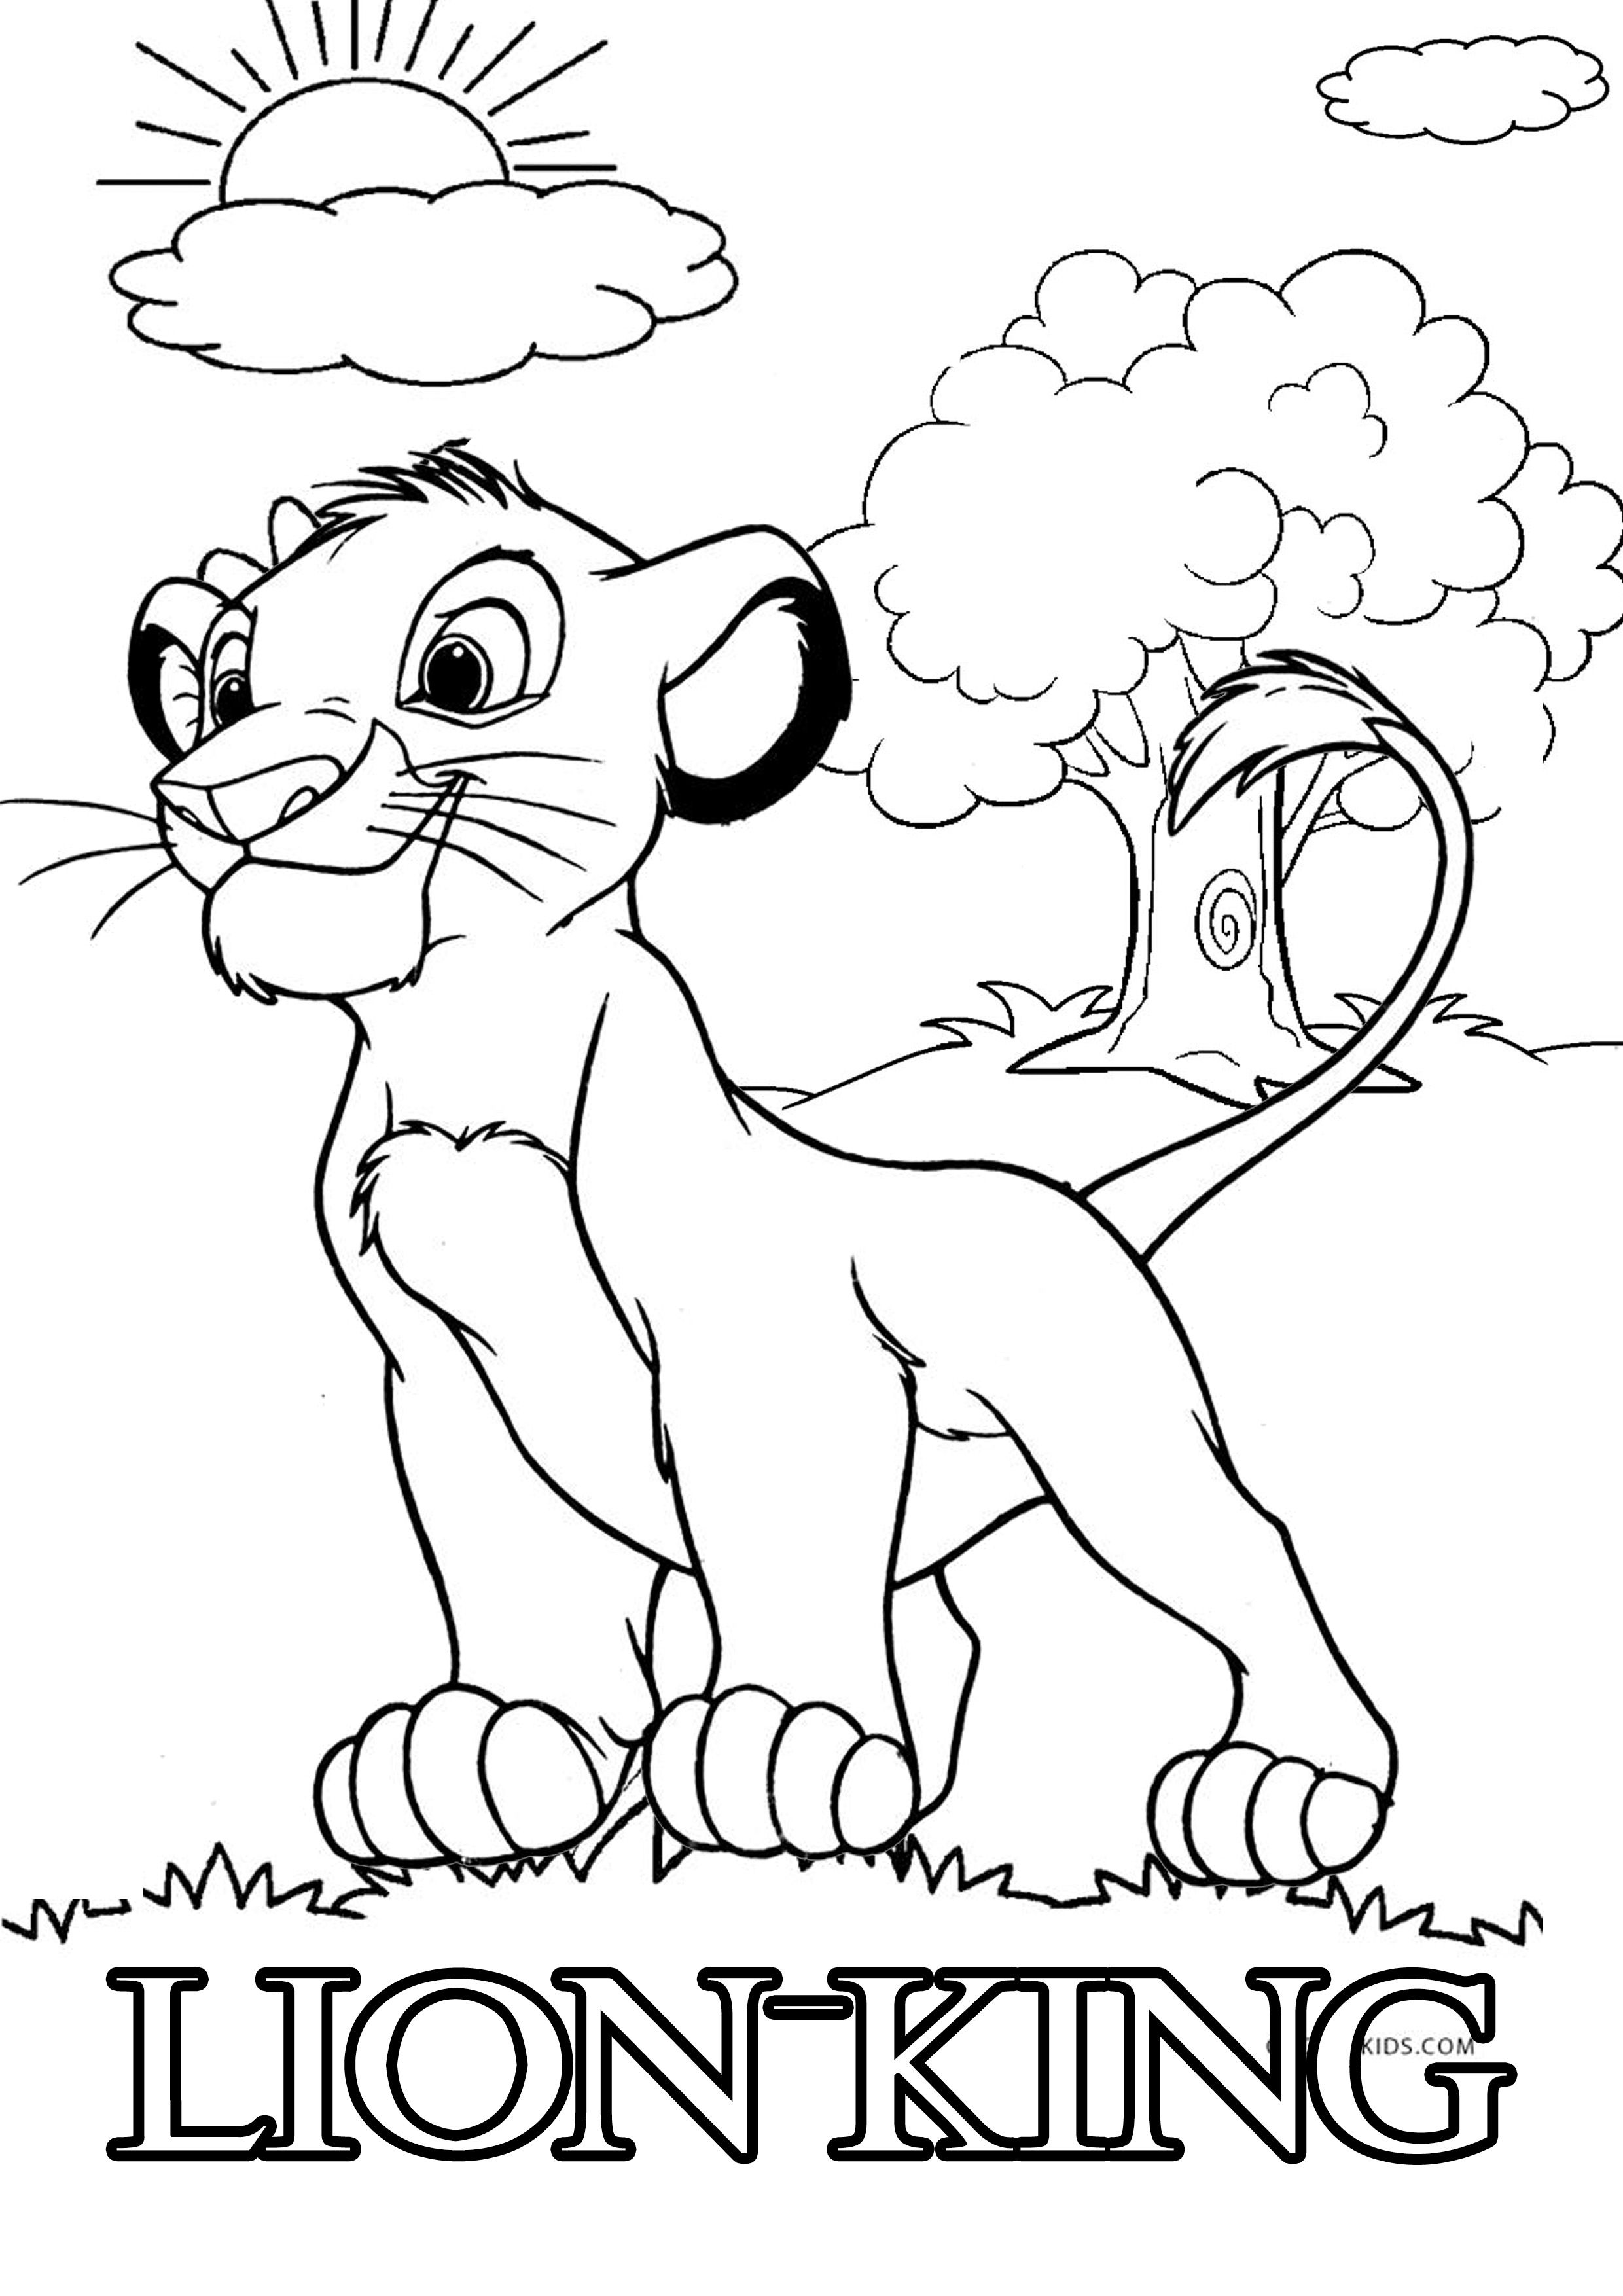 free lion king coloring pages lovely scar lion king coloring pages  info coloring lion free pages coloring king